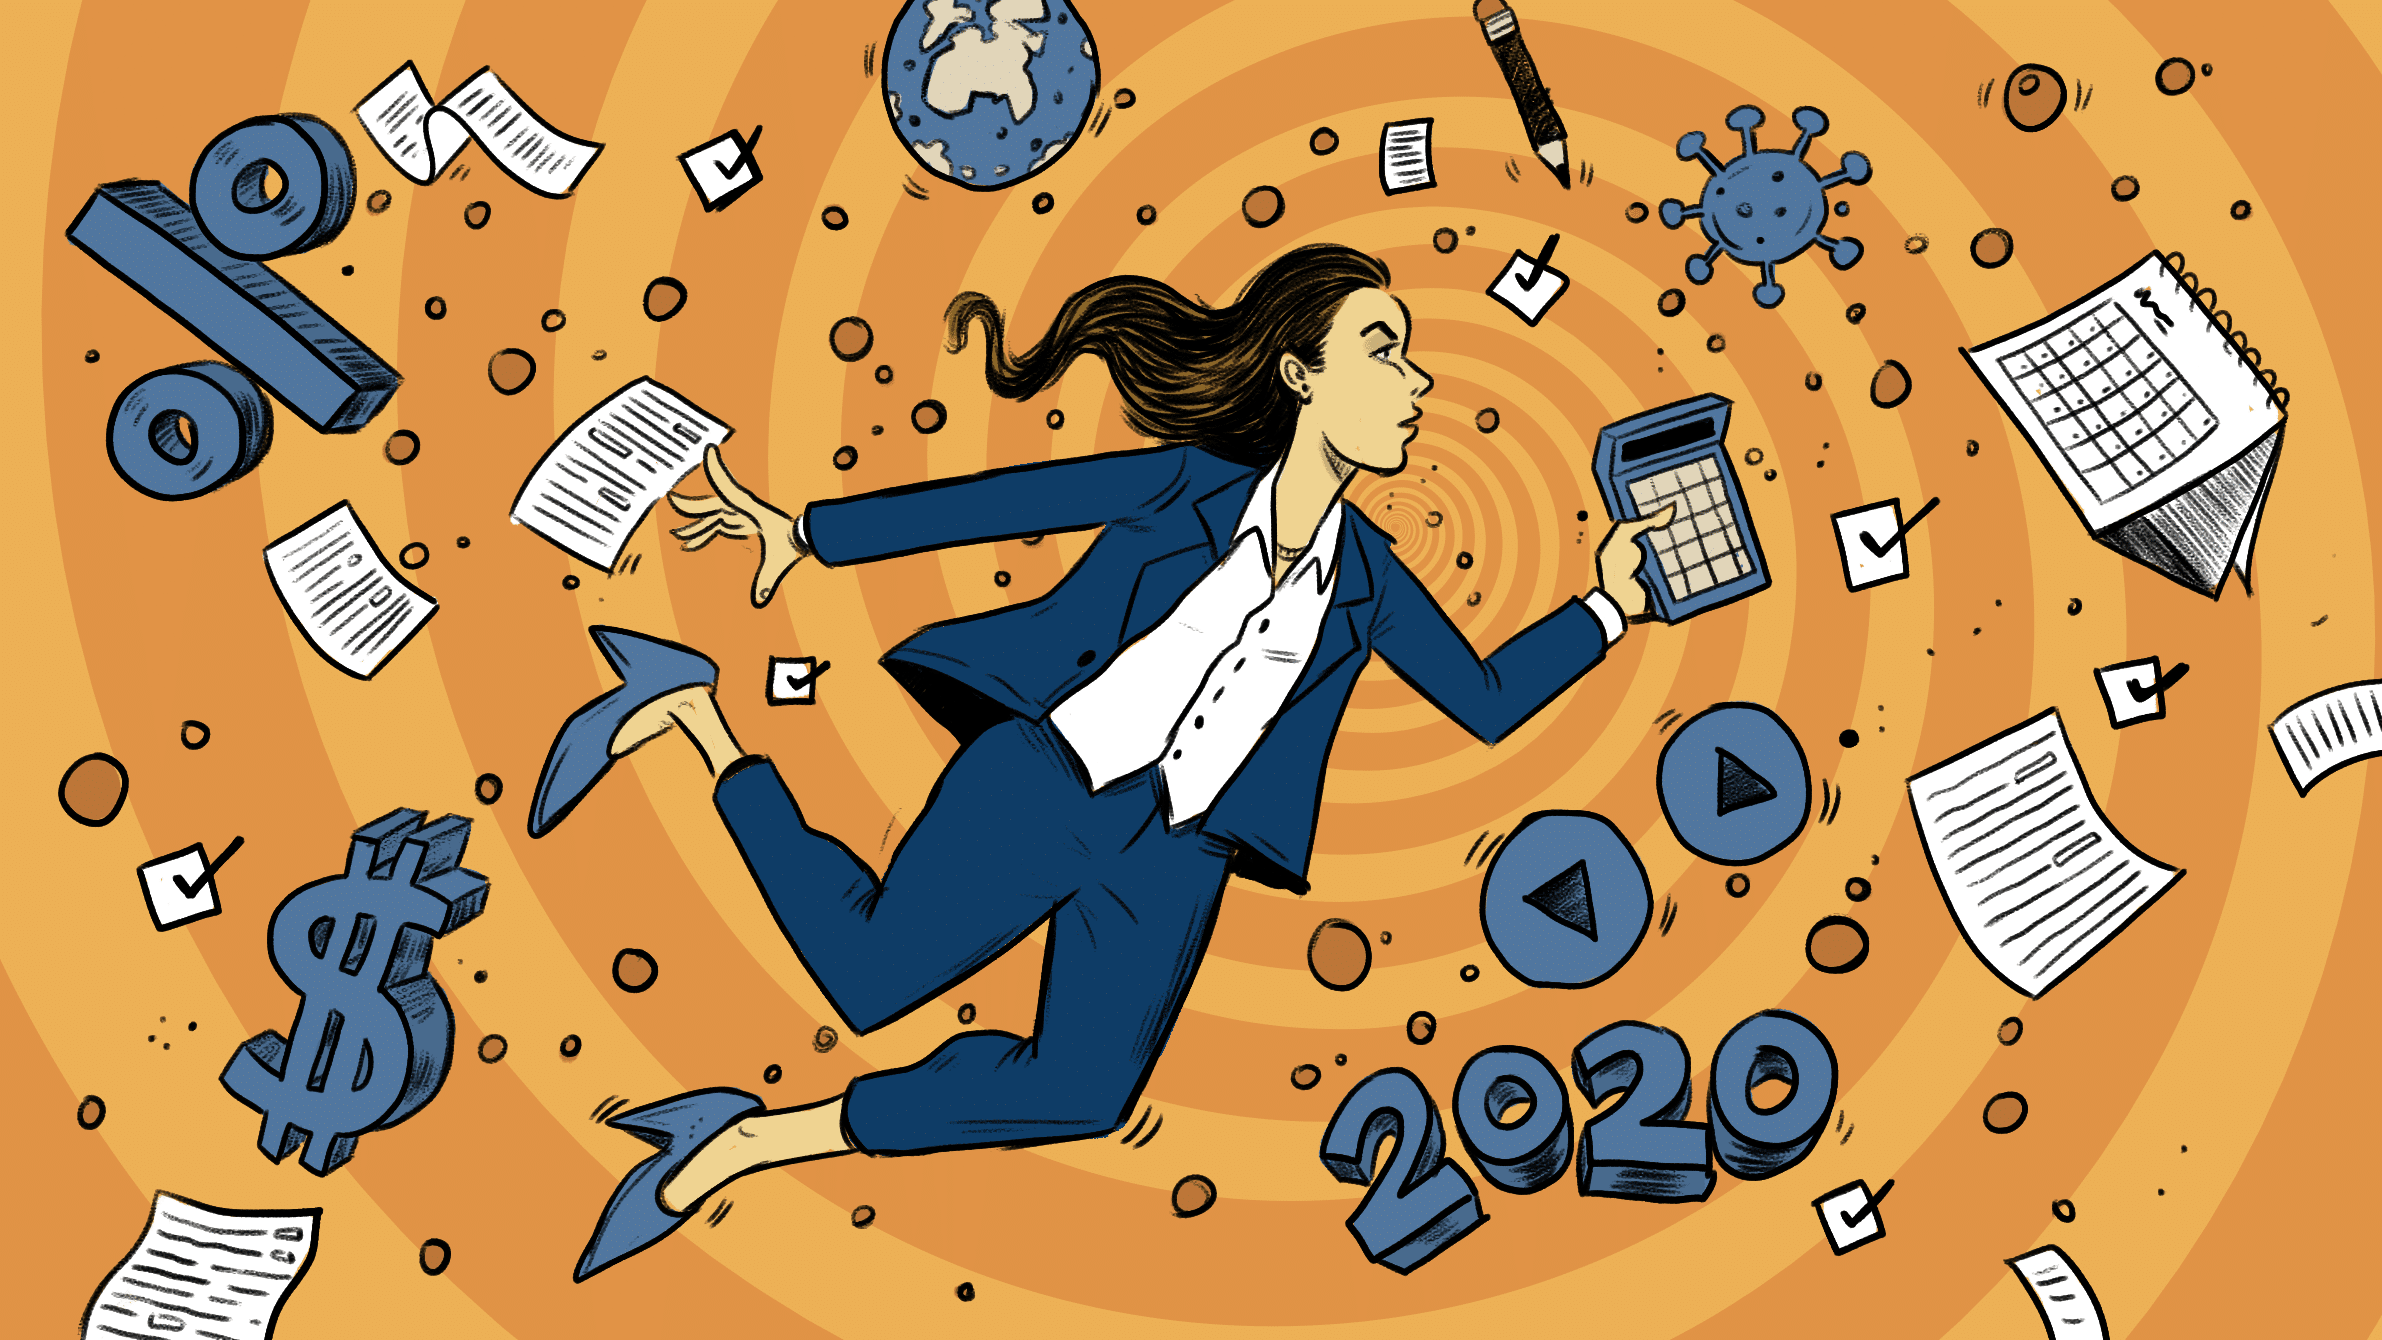 illustration of woman surrounded by tax related images